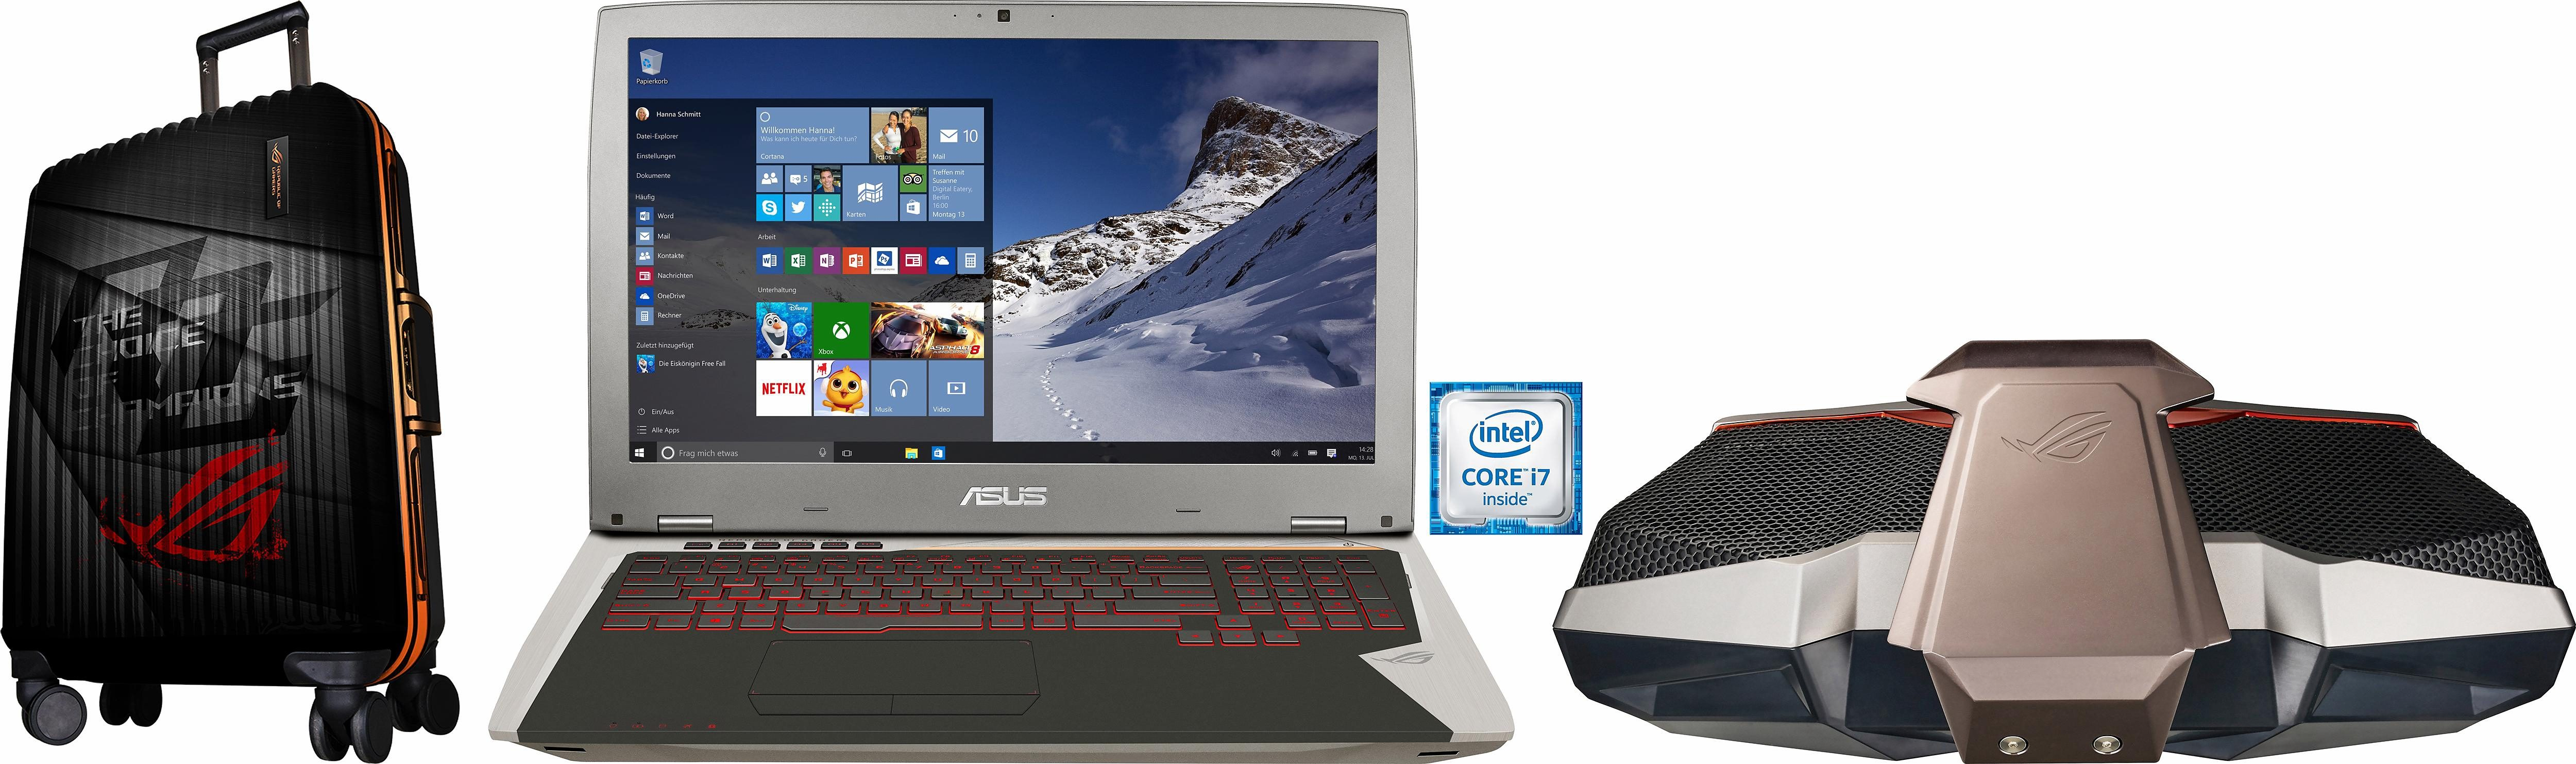 Asus GX700VO-GC009T Notebook, Intel® Core™ i7, 43,9 cm (17,3 Zoll), 512 GB Speicher